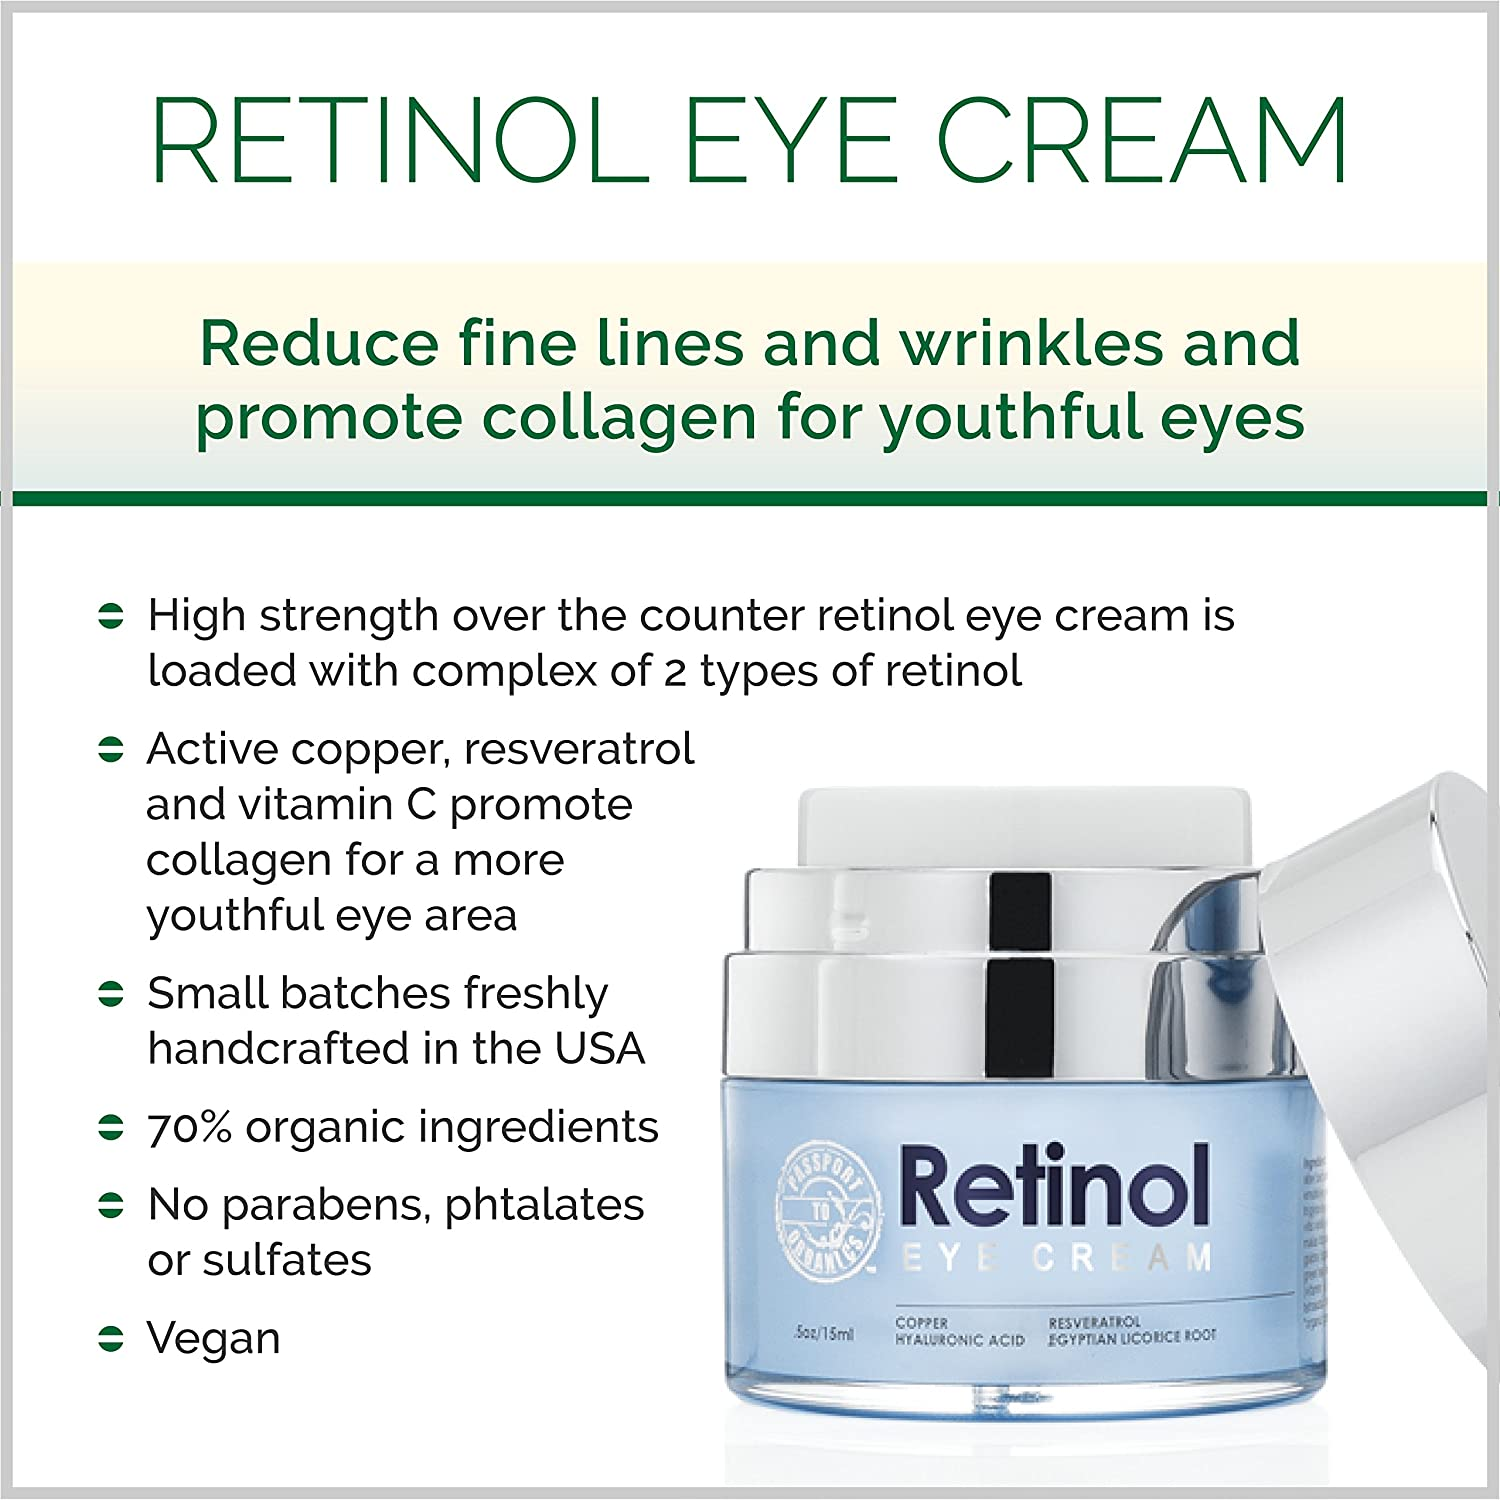 Best Otc Retinol Cream 2016 - All The Best Cream In 2018